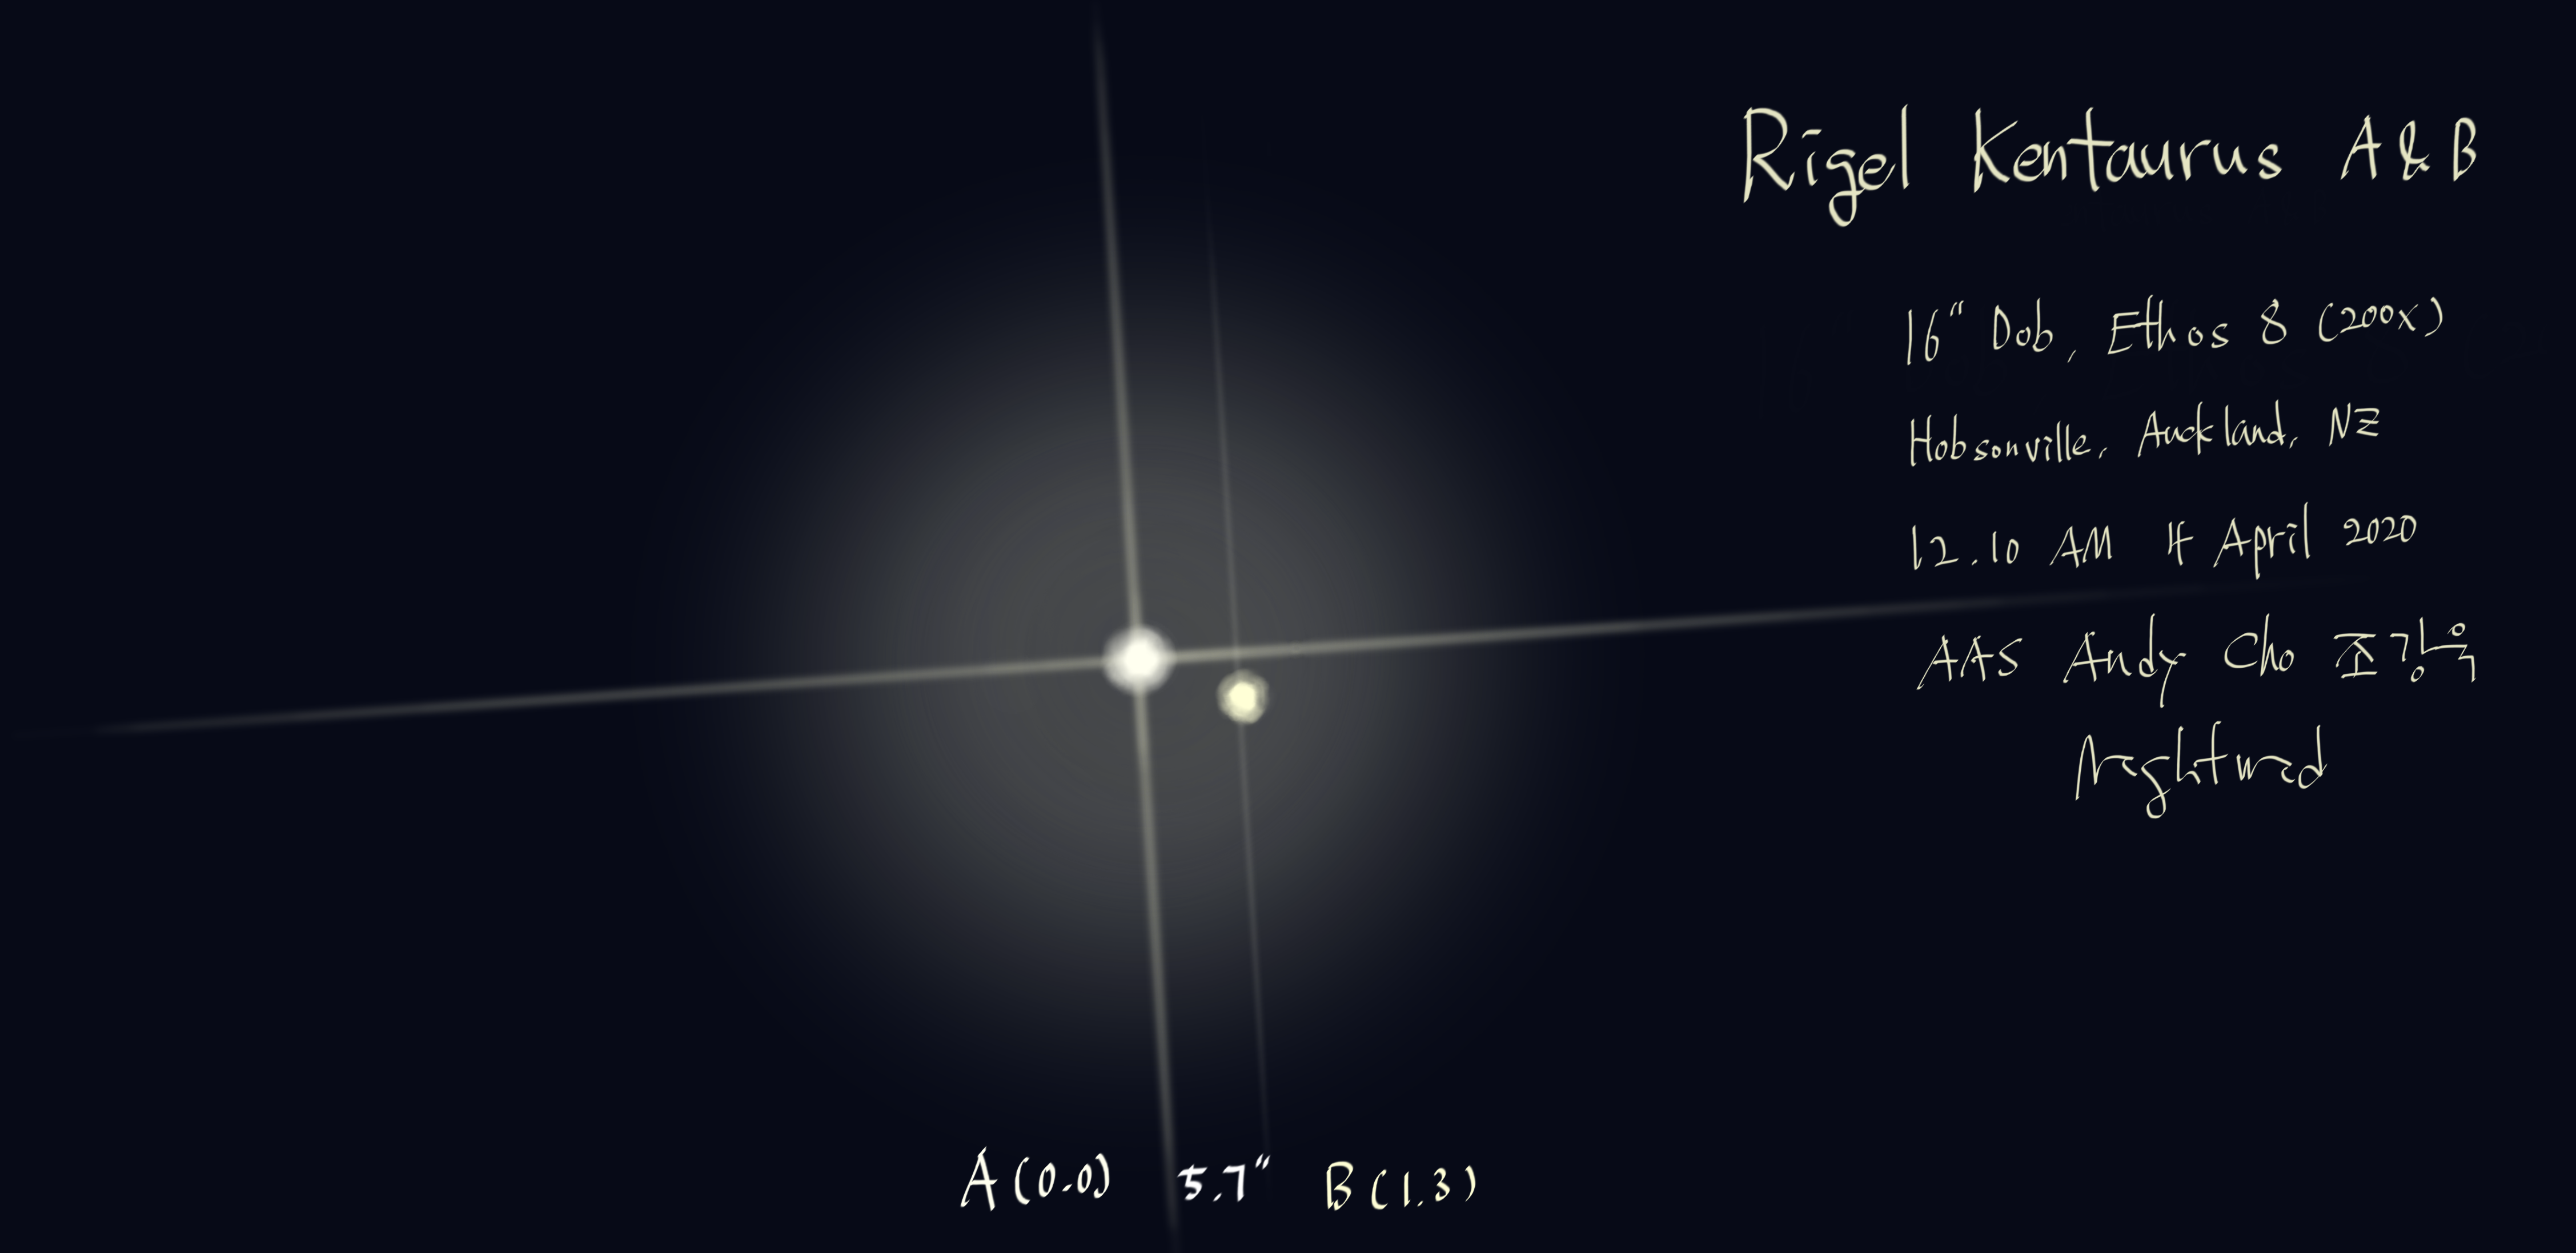 Rigel Kentaurus 4 April 2020.png